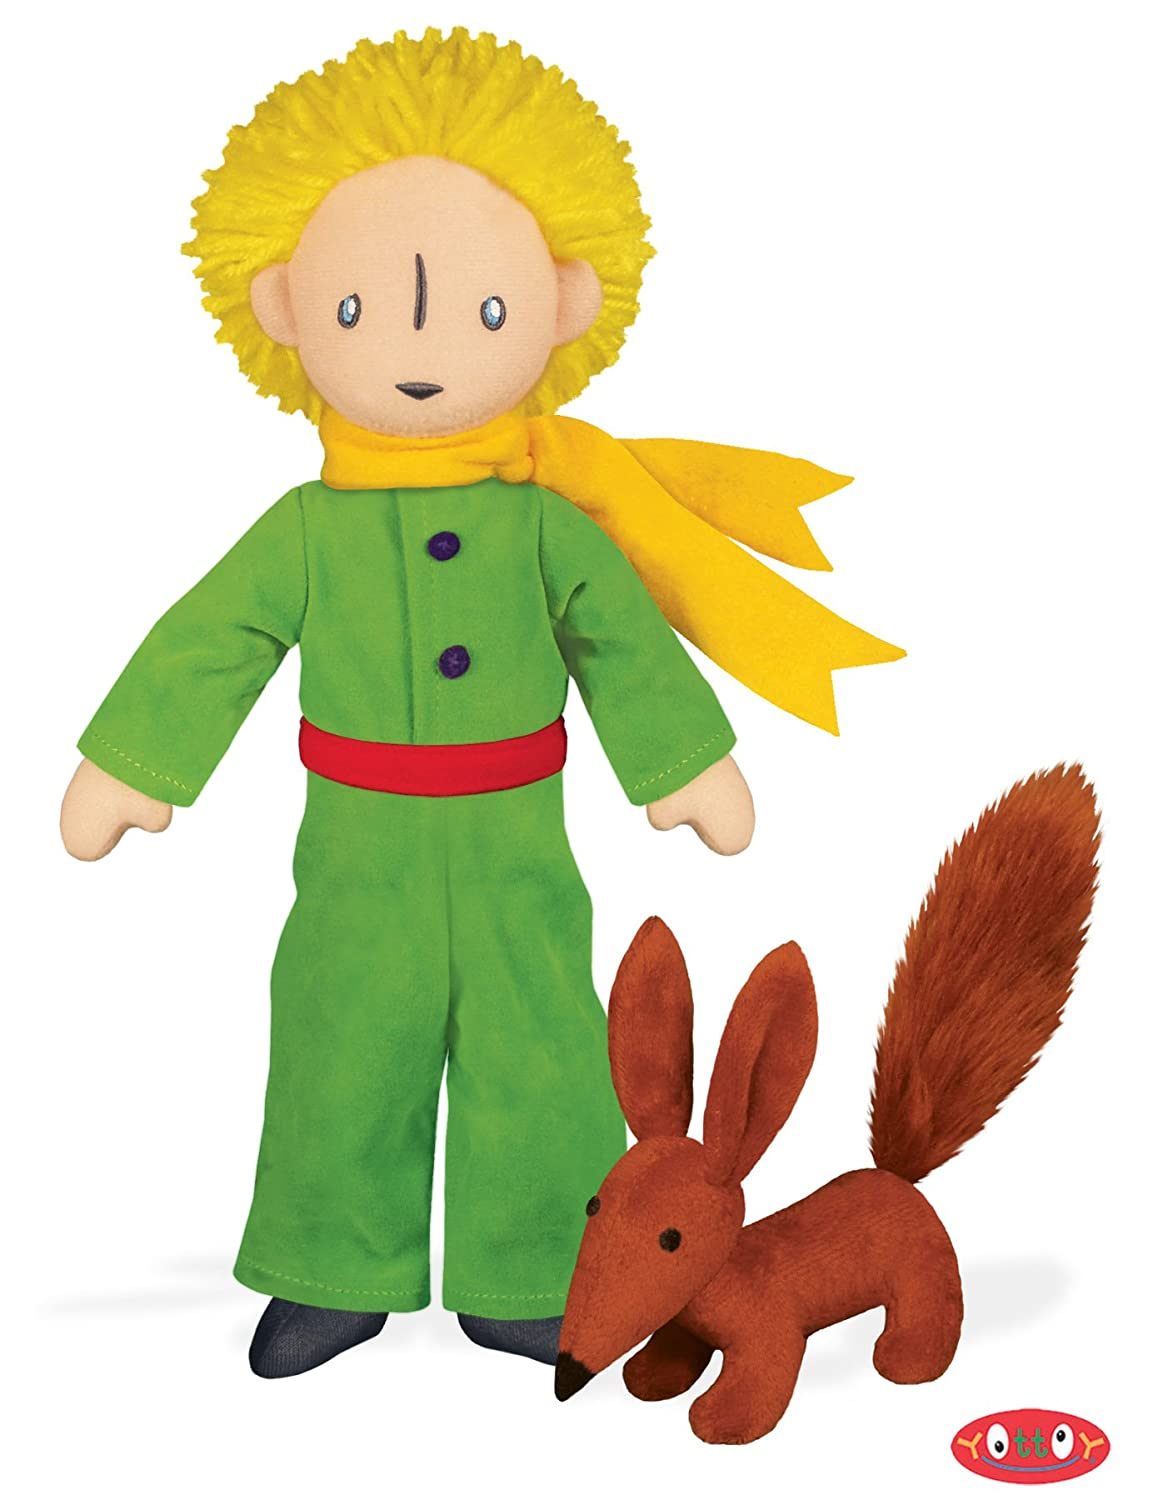 The Little Prince with Fox Soft Toy by Yottoy